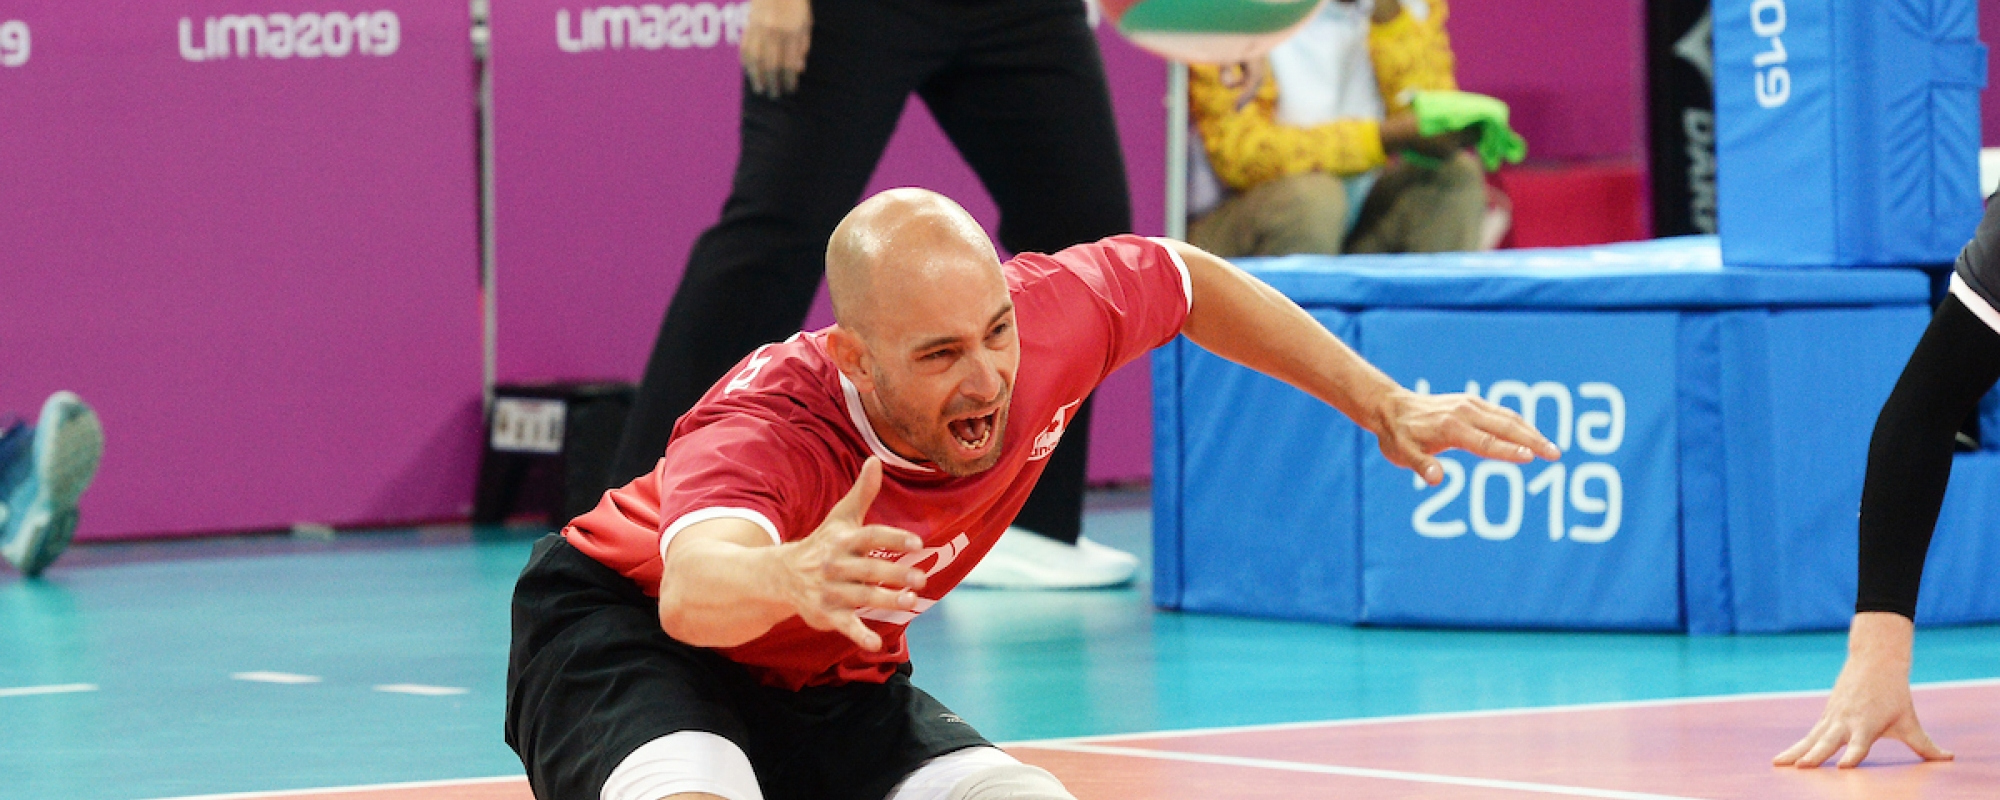 Mikael Bartholdy reaches for the ball in a game of sitting volleyball